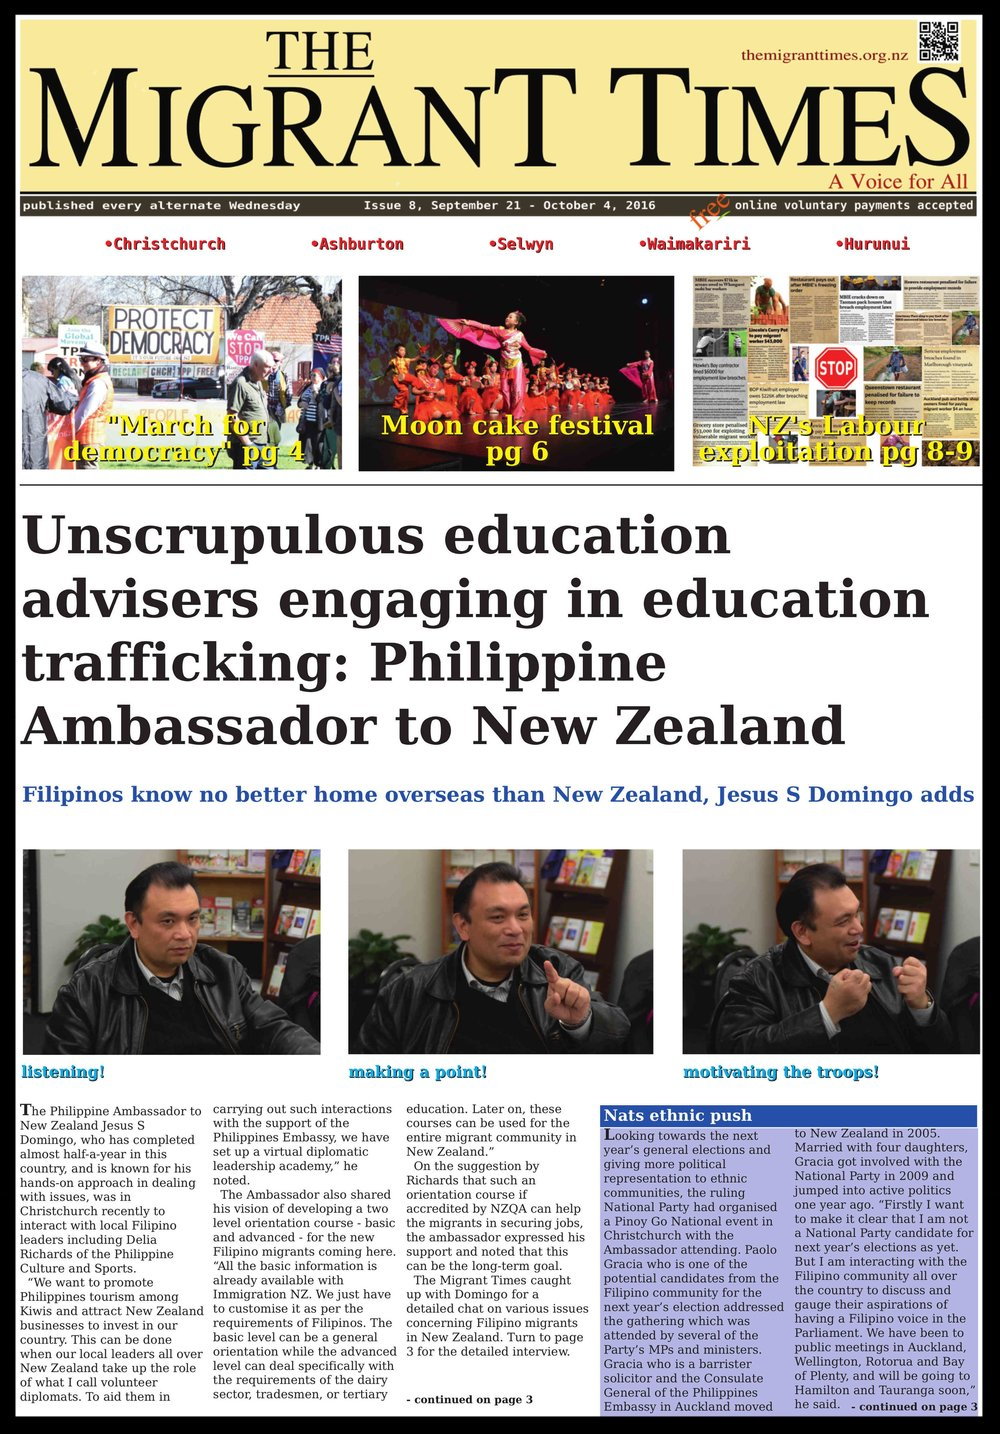 Click on the image to read the pdf version Issue 8, September 21 - October 4, 2016